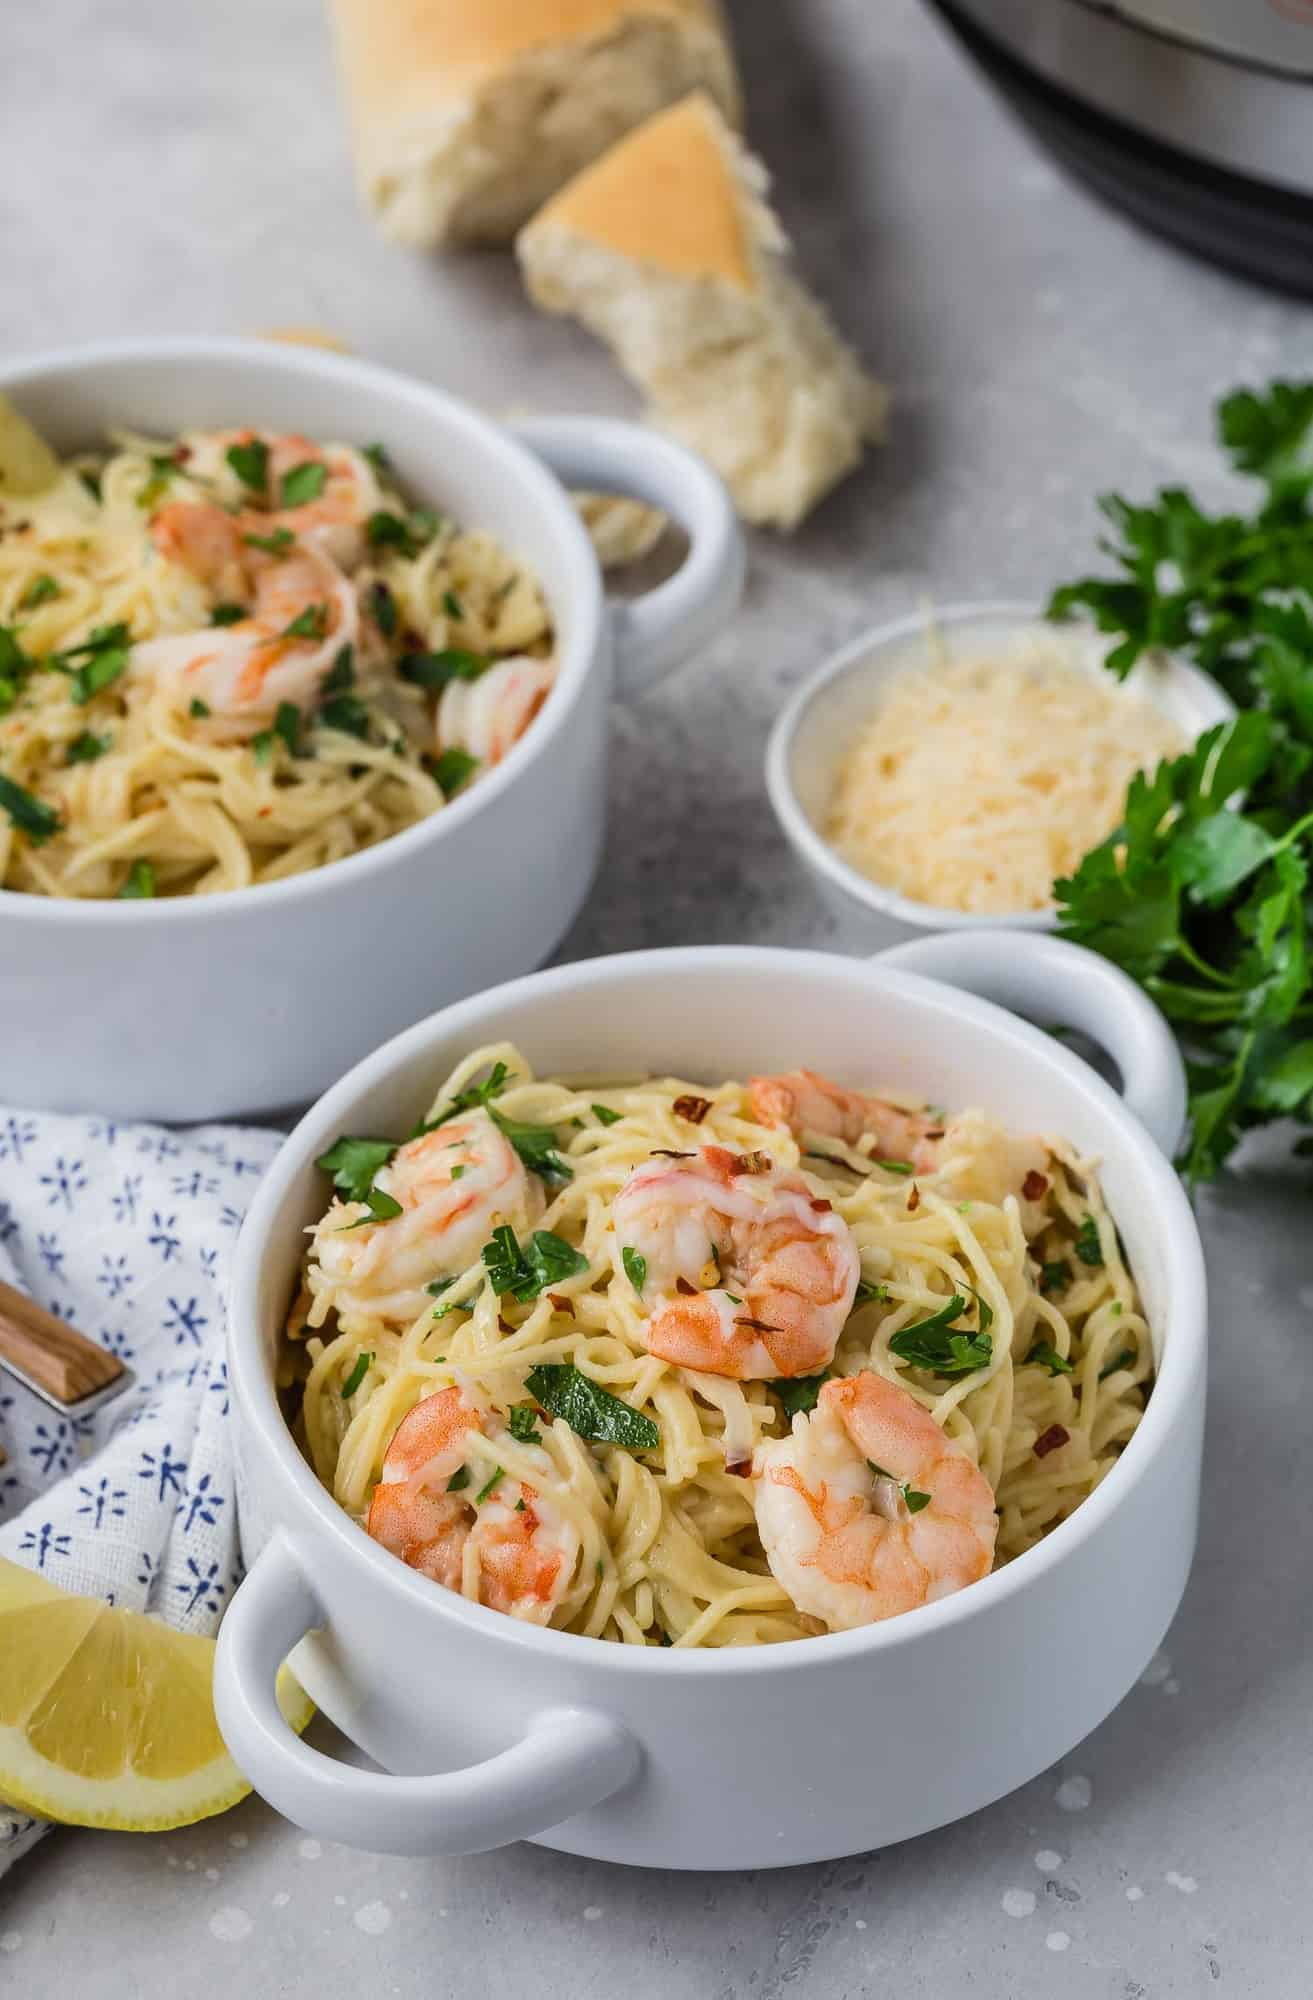 Two bowls of shrimp scampi pasta, bread, cheese, and parsley in background.